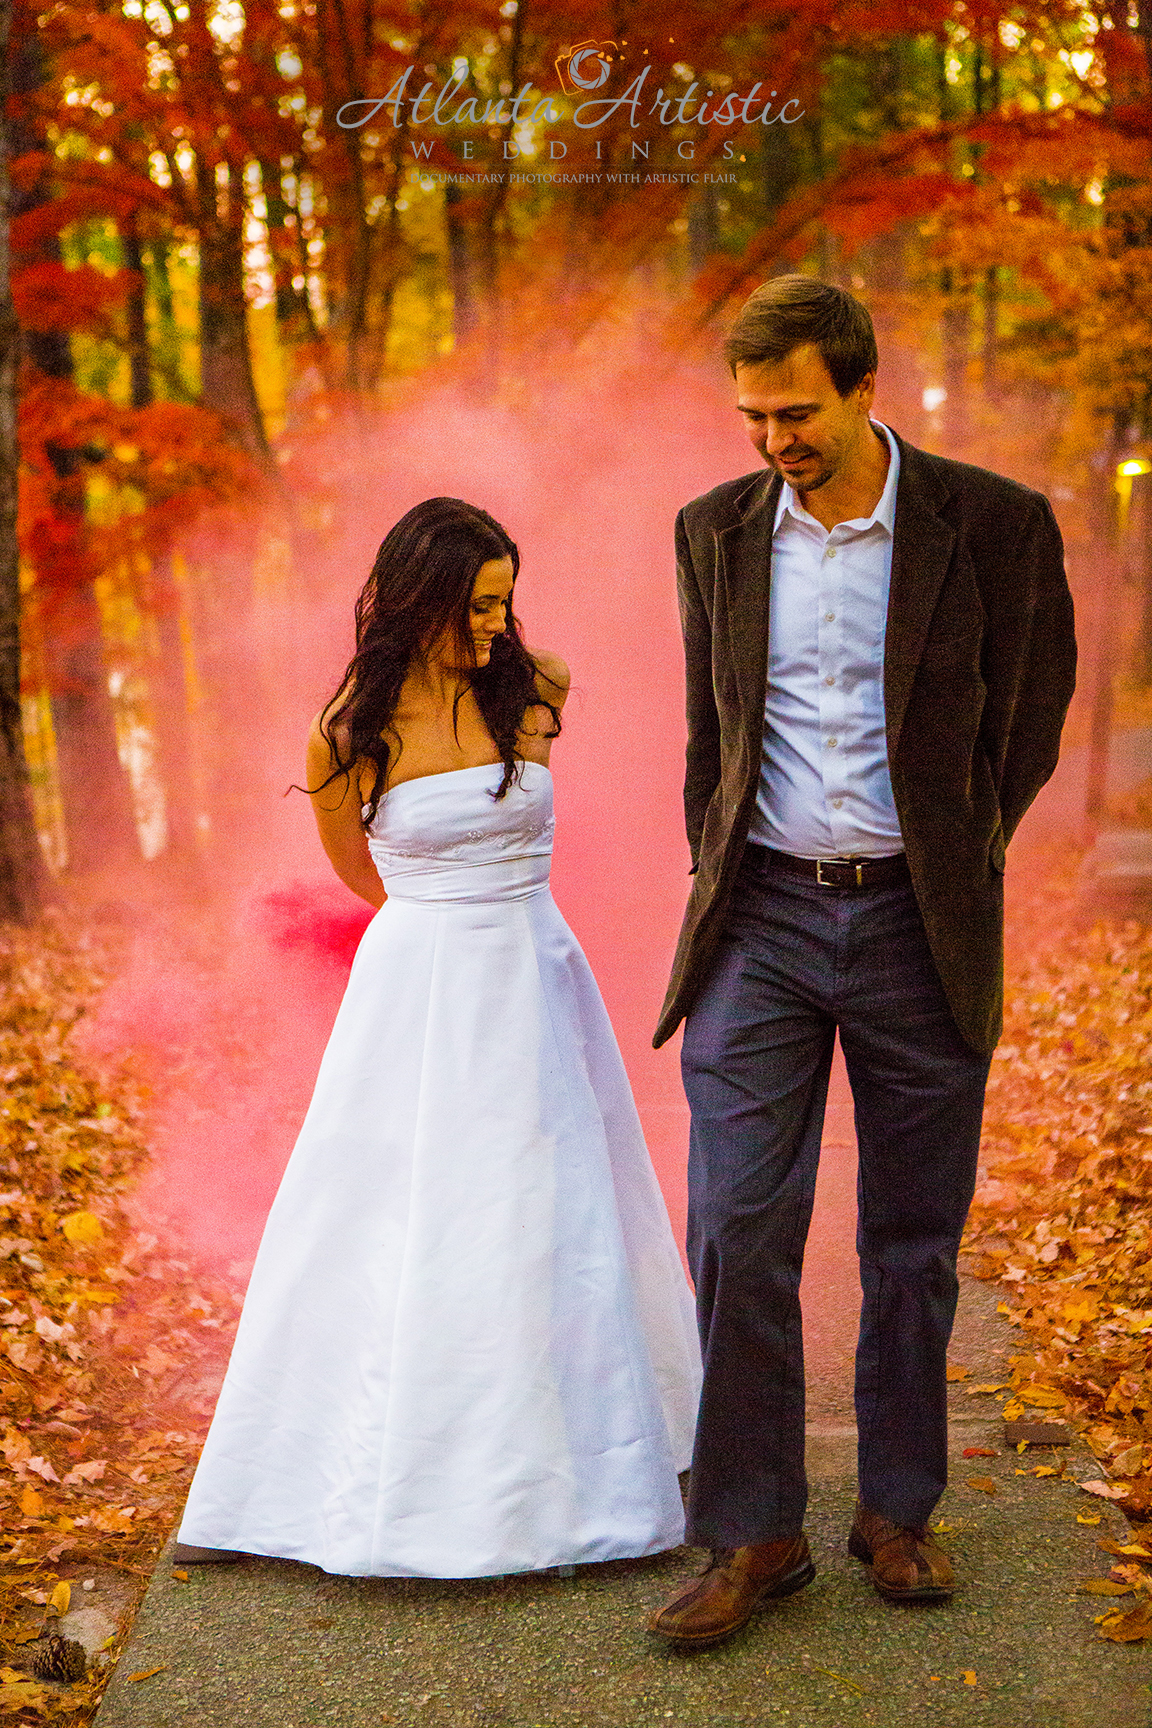 Color Bomb fall wedding photo by the Atlanta Wedding photographers at AtlantaArtisticWeddings